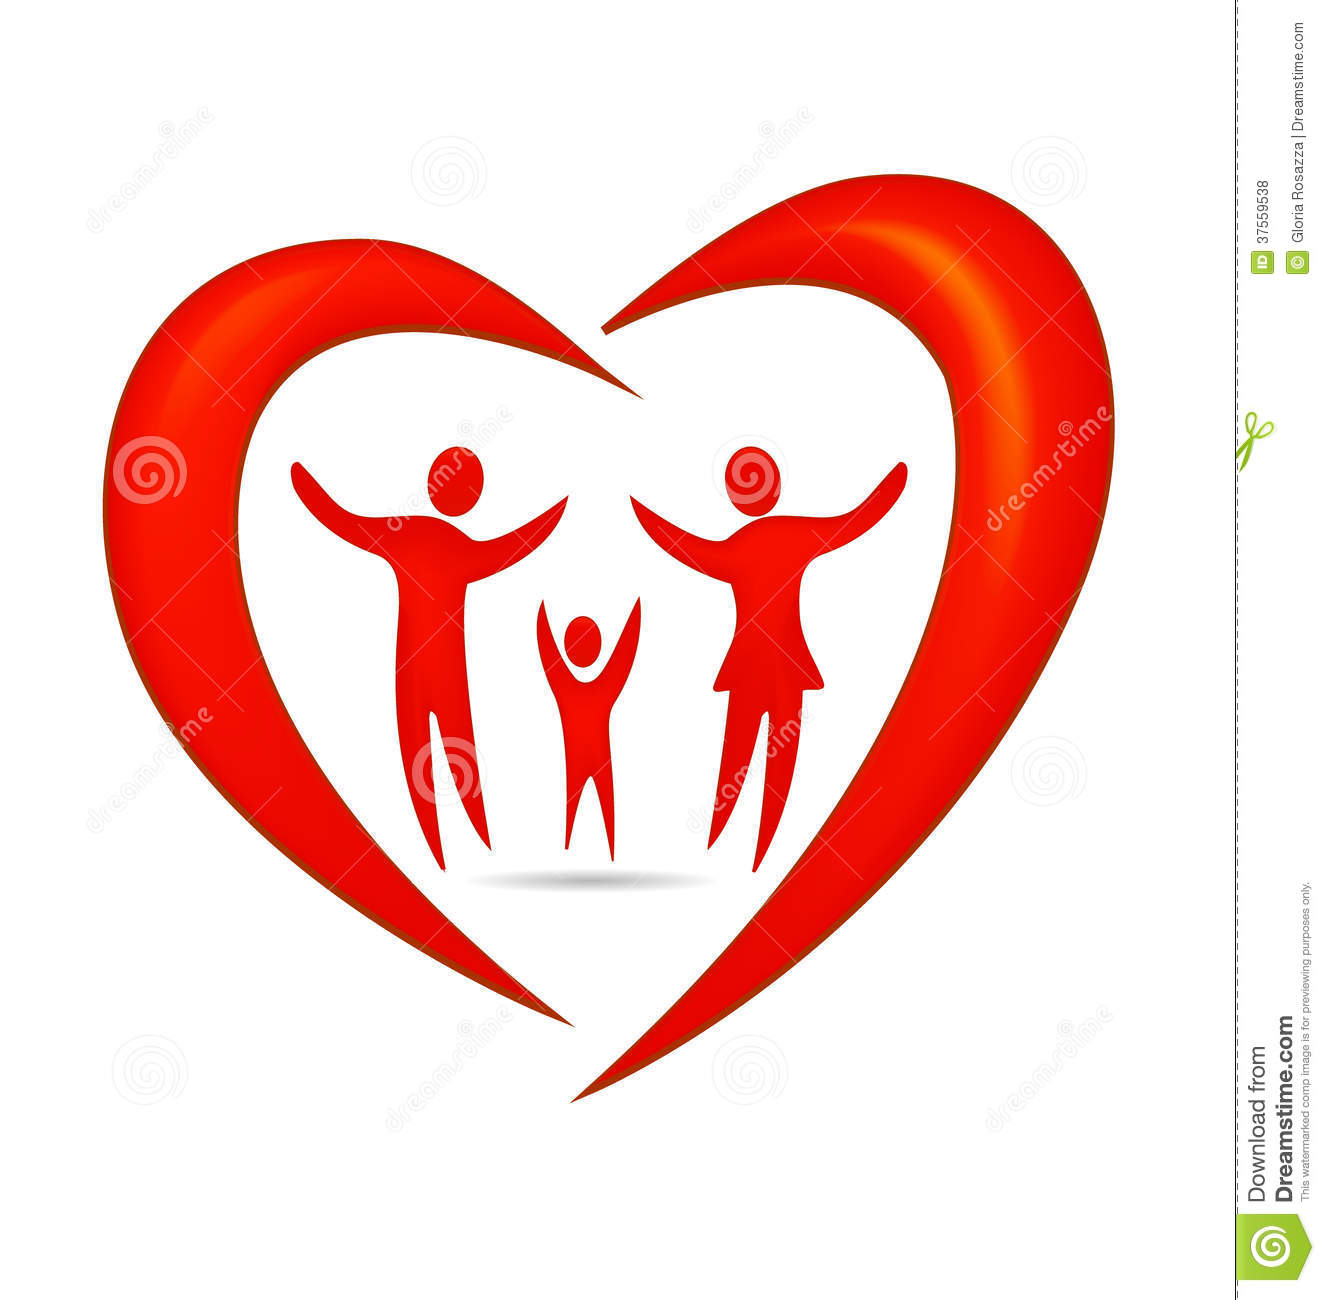 House Blogs Family Heart Logo Royalty Free Stock Photos Image 37559538